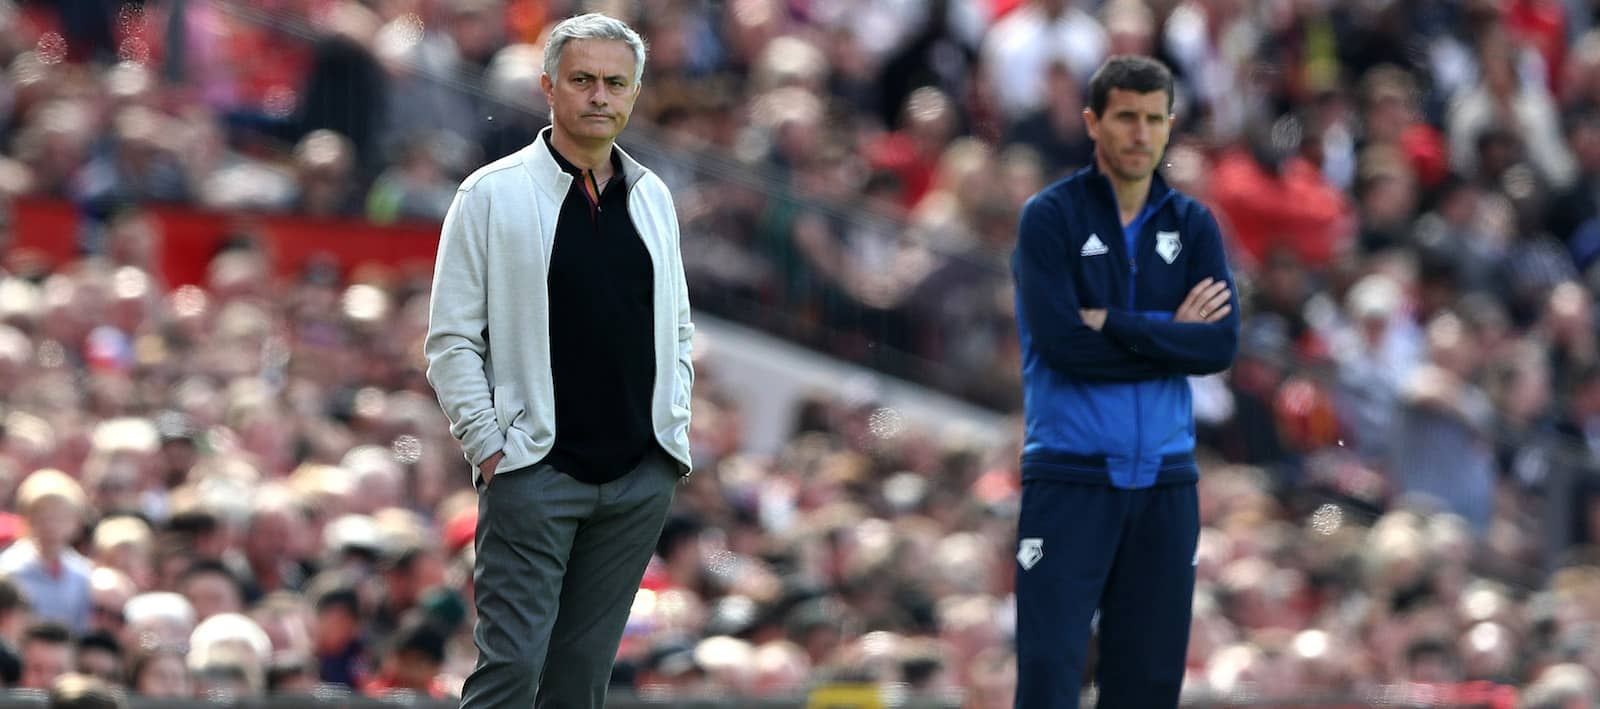 Paul Ince: Manchester United should smash Chelsea in FA Cup final